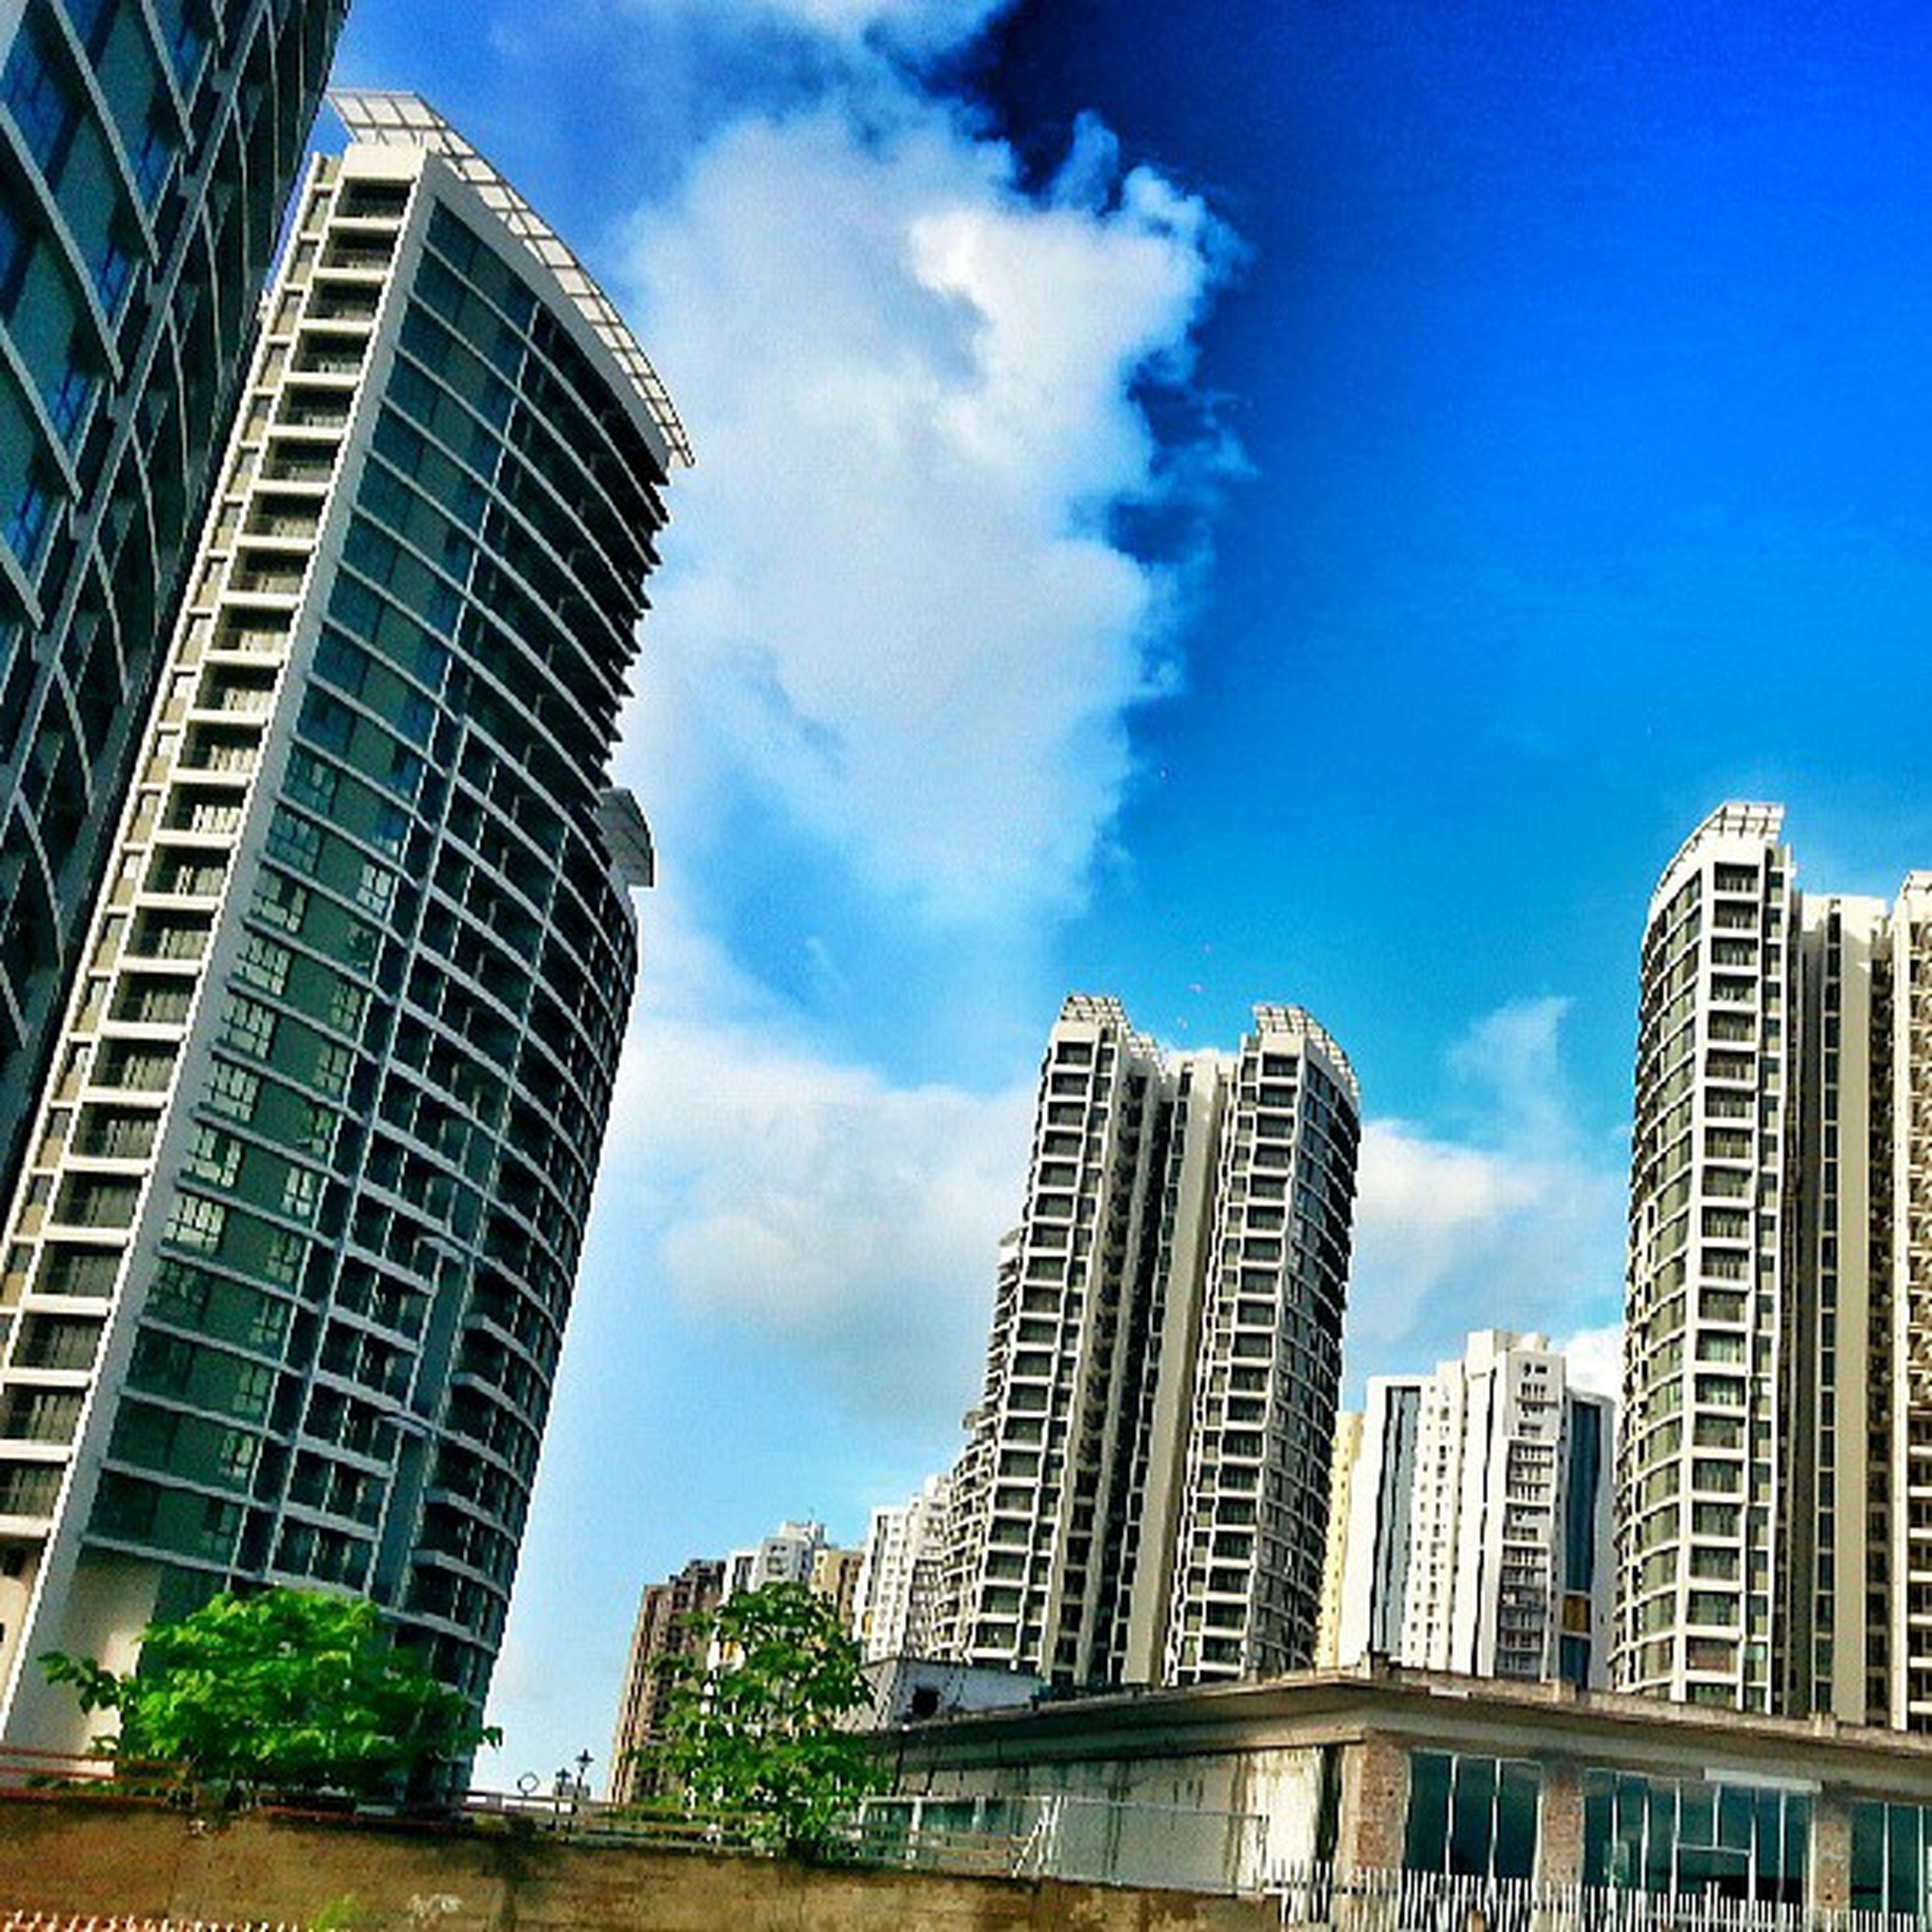 building exterior, architecture, built structure, city, modern, low angle view, skyscraper, office building, sky, blue, tall - high, building, tower, cloud - sky, cloud, glass - material, day, city life, financial district, outdoors